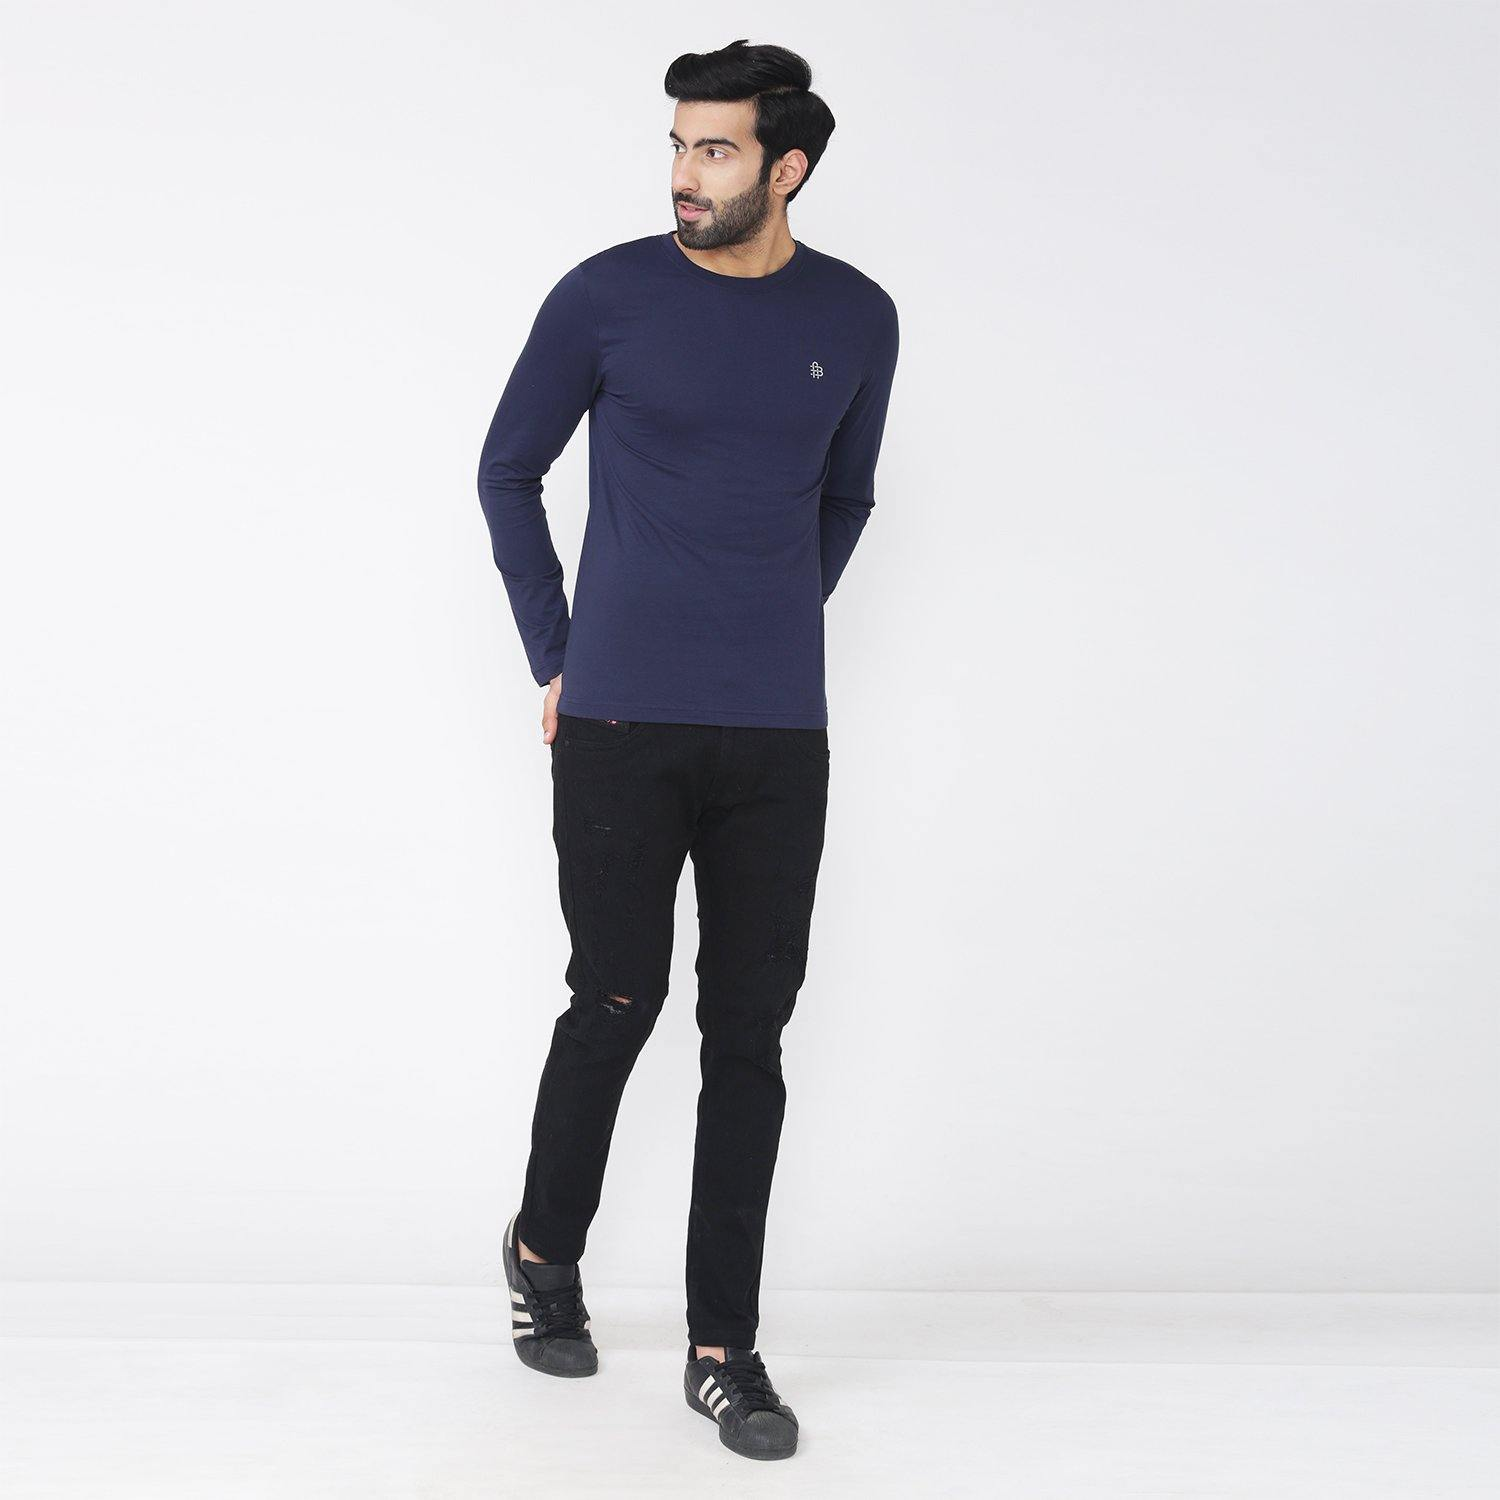 Men's Full Sleeve Round Neck T-Shirt - Navy